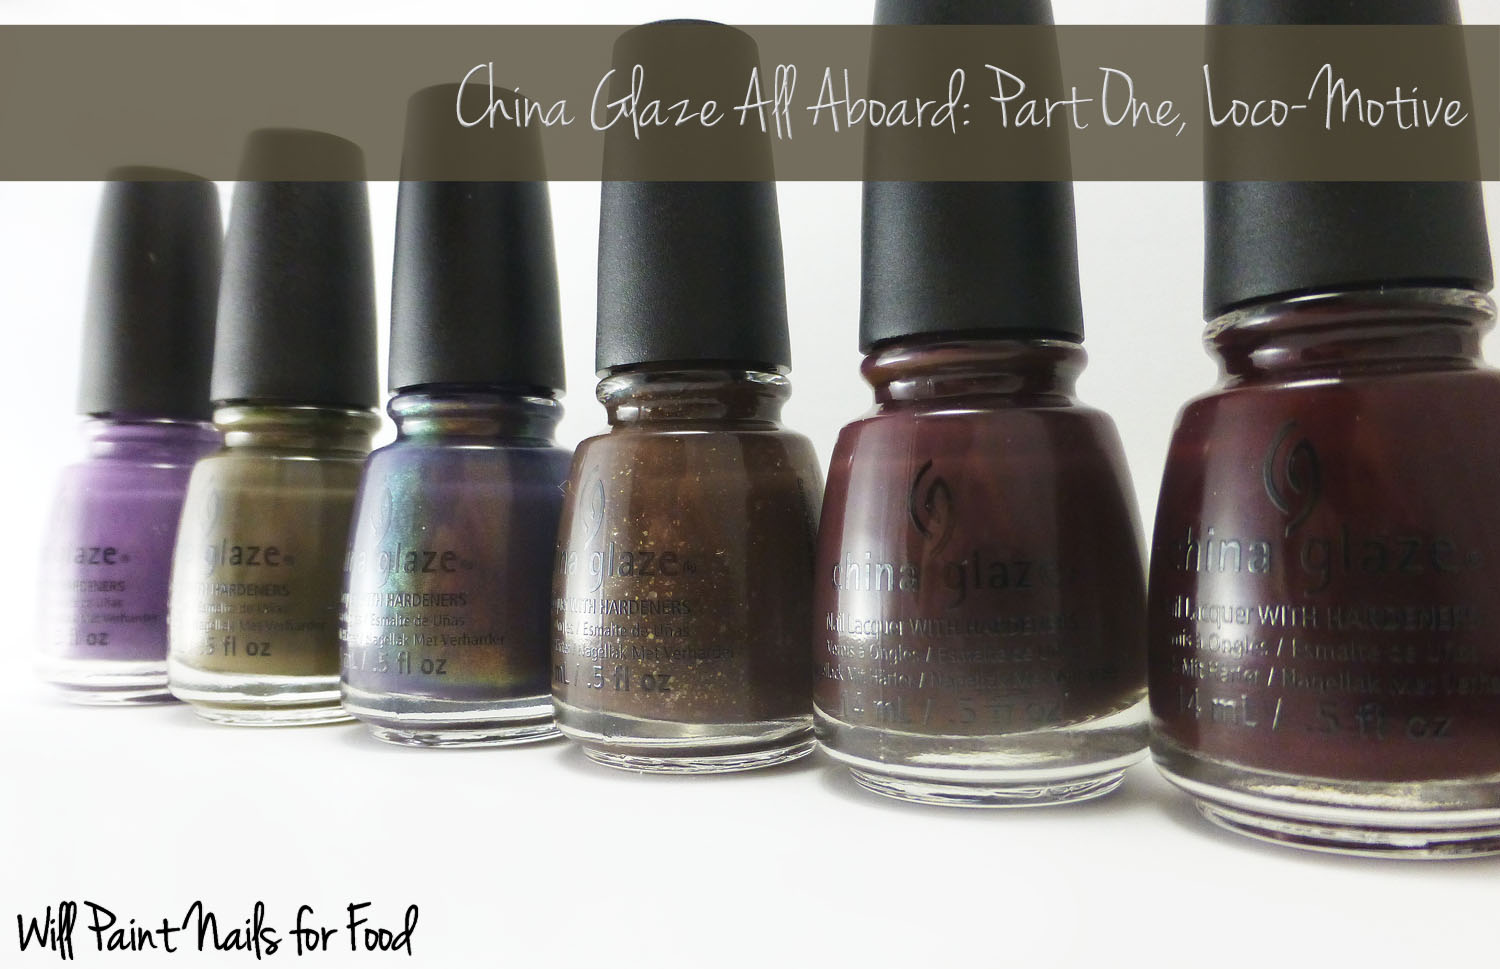 China Glaze All Aboard collection: Part one, Loco-Motive